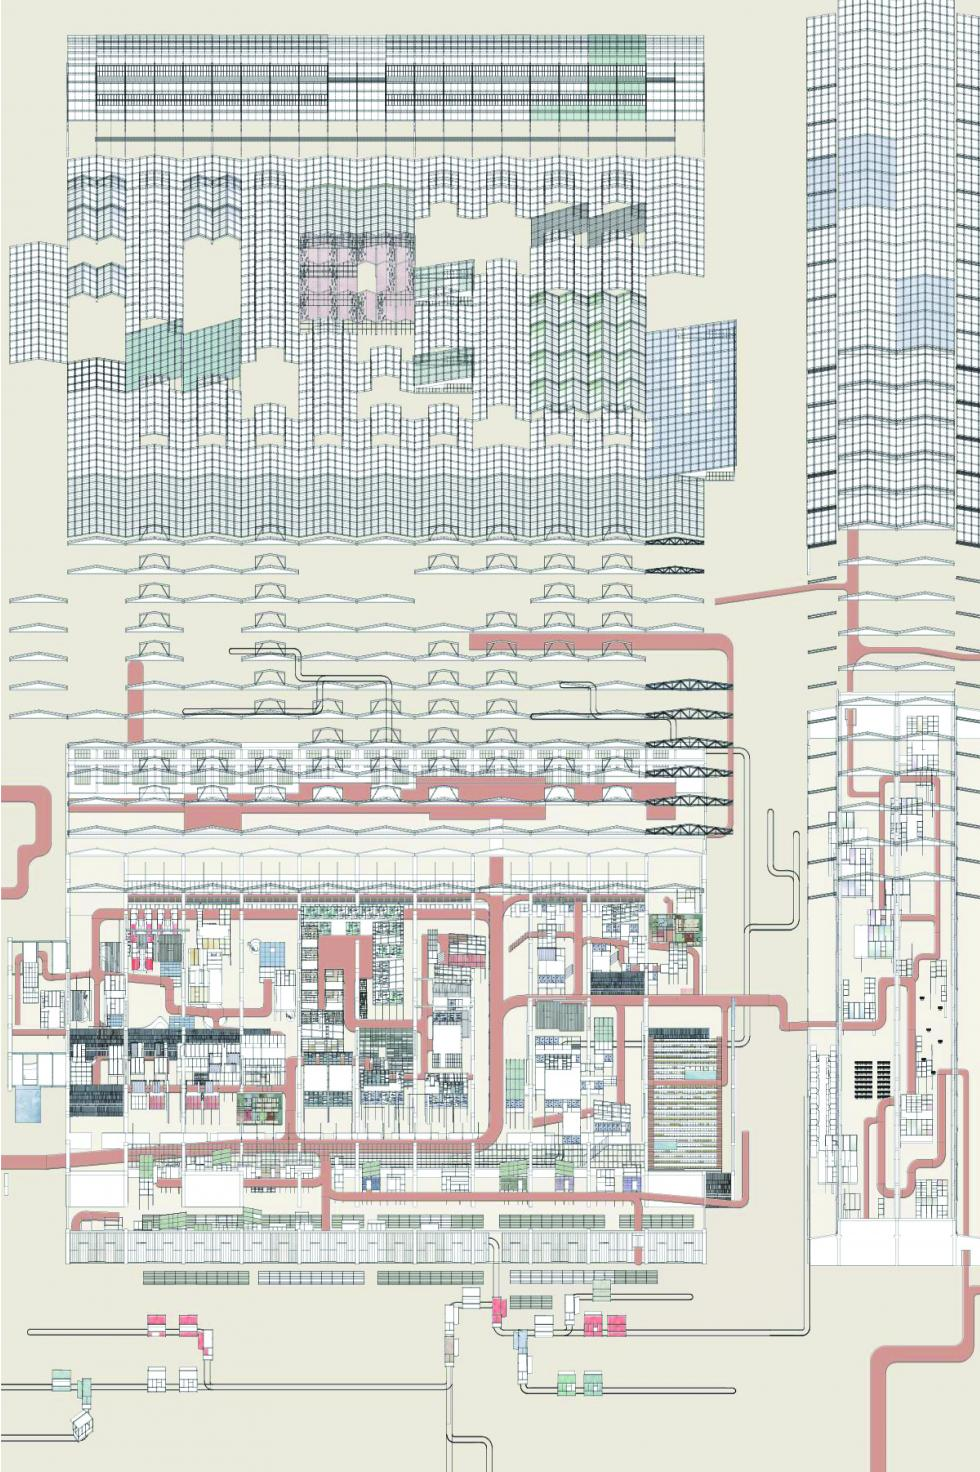 Overall axonometric showing a factory like building with pipes.